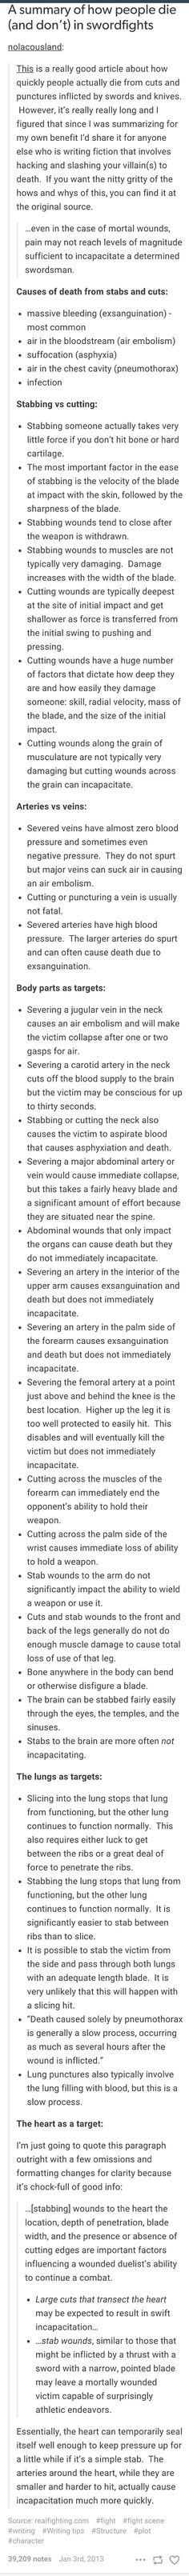 Really informative list about stab wounds. Basically everything you need to know about them. Read away!